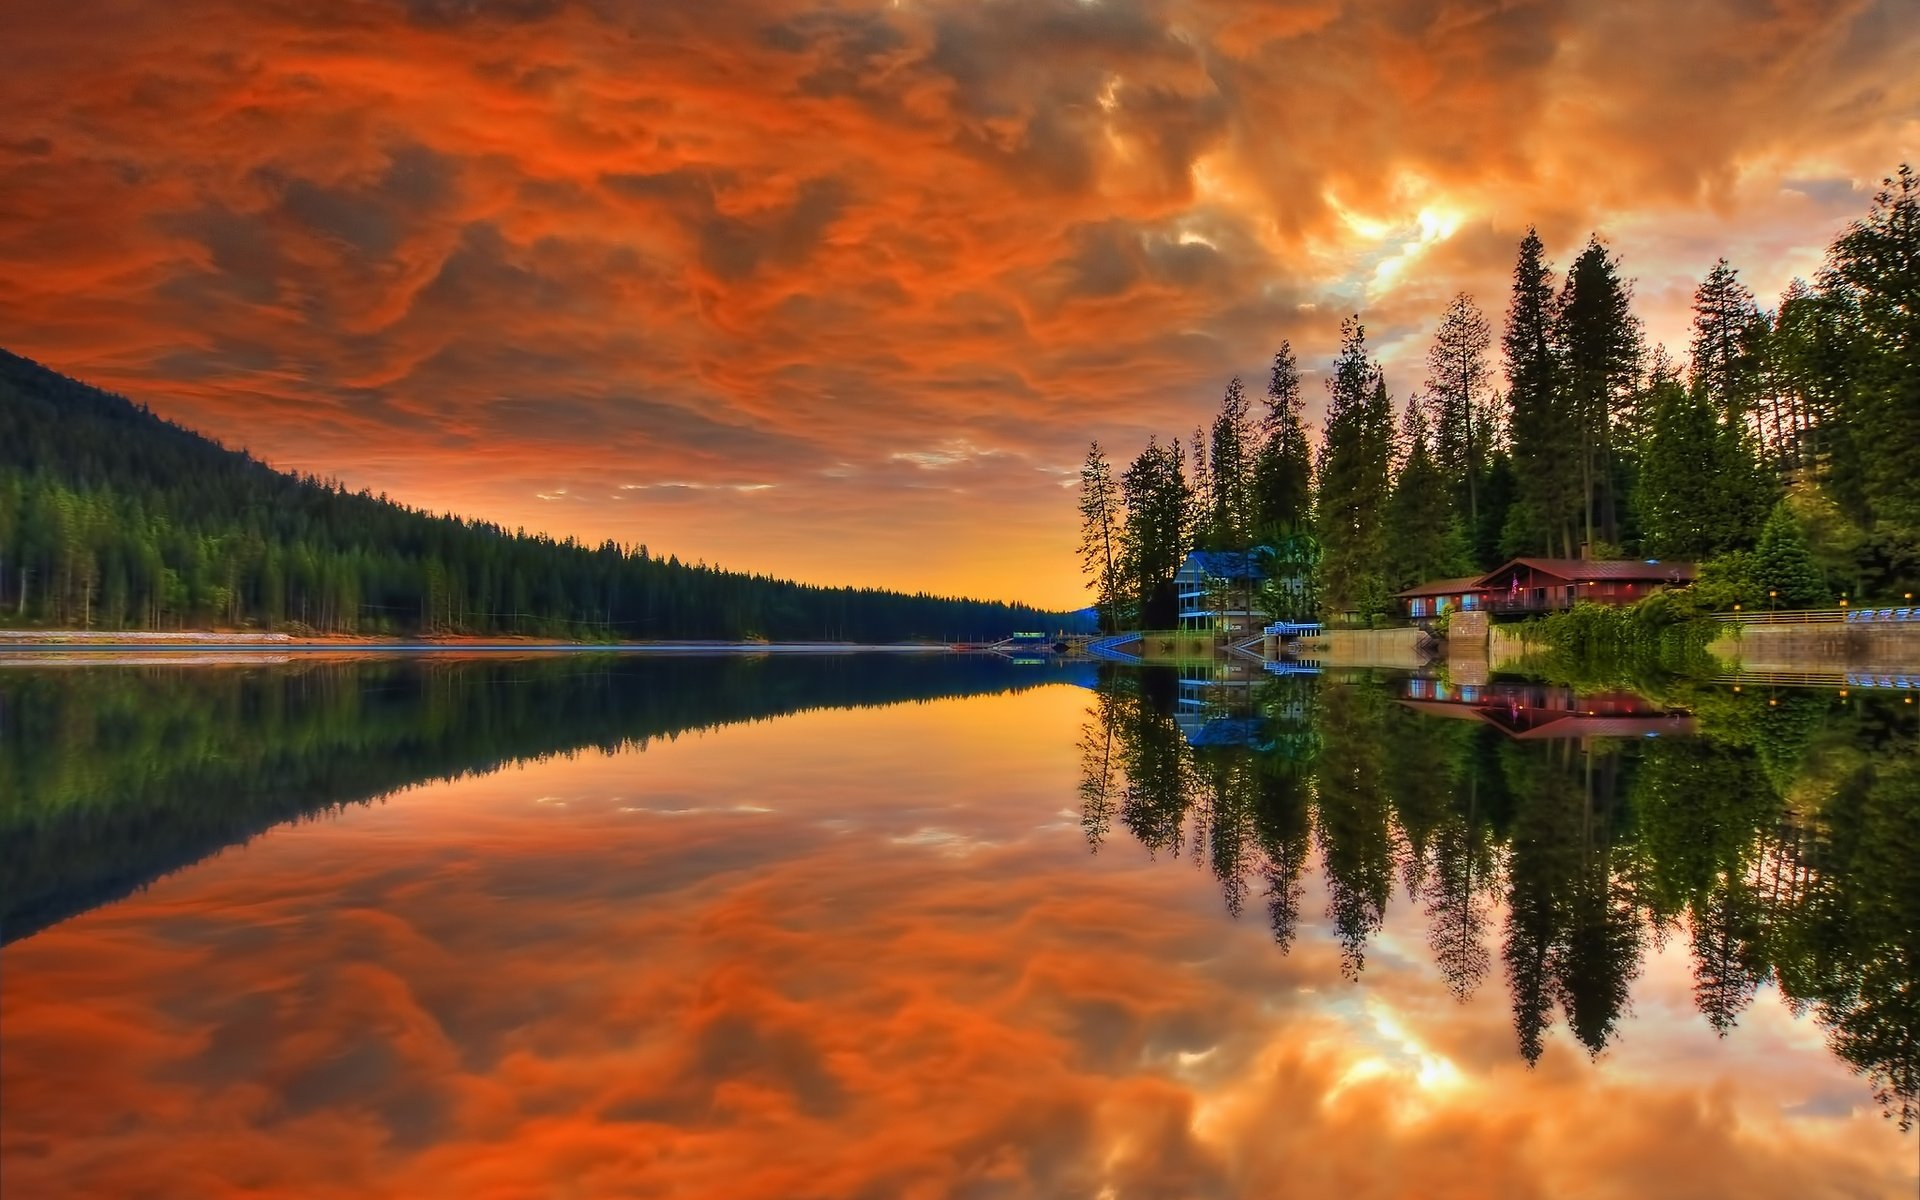 Haus am see wallpaper  Reflection of Houses on the Lake Full HD Wallpaper and Hintergrund ...